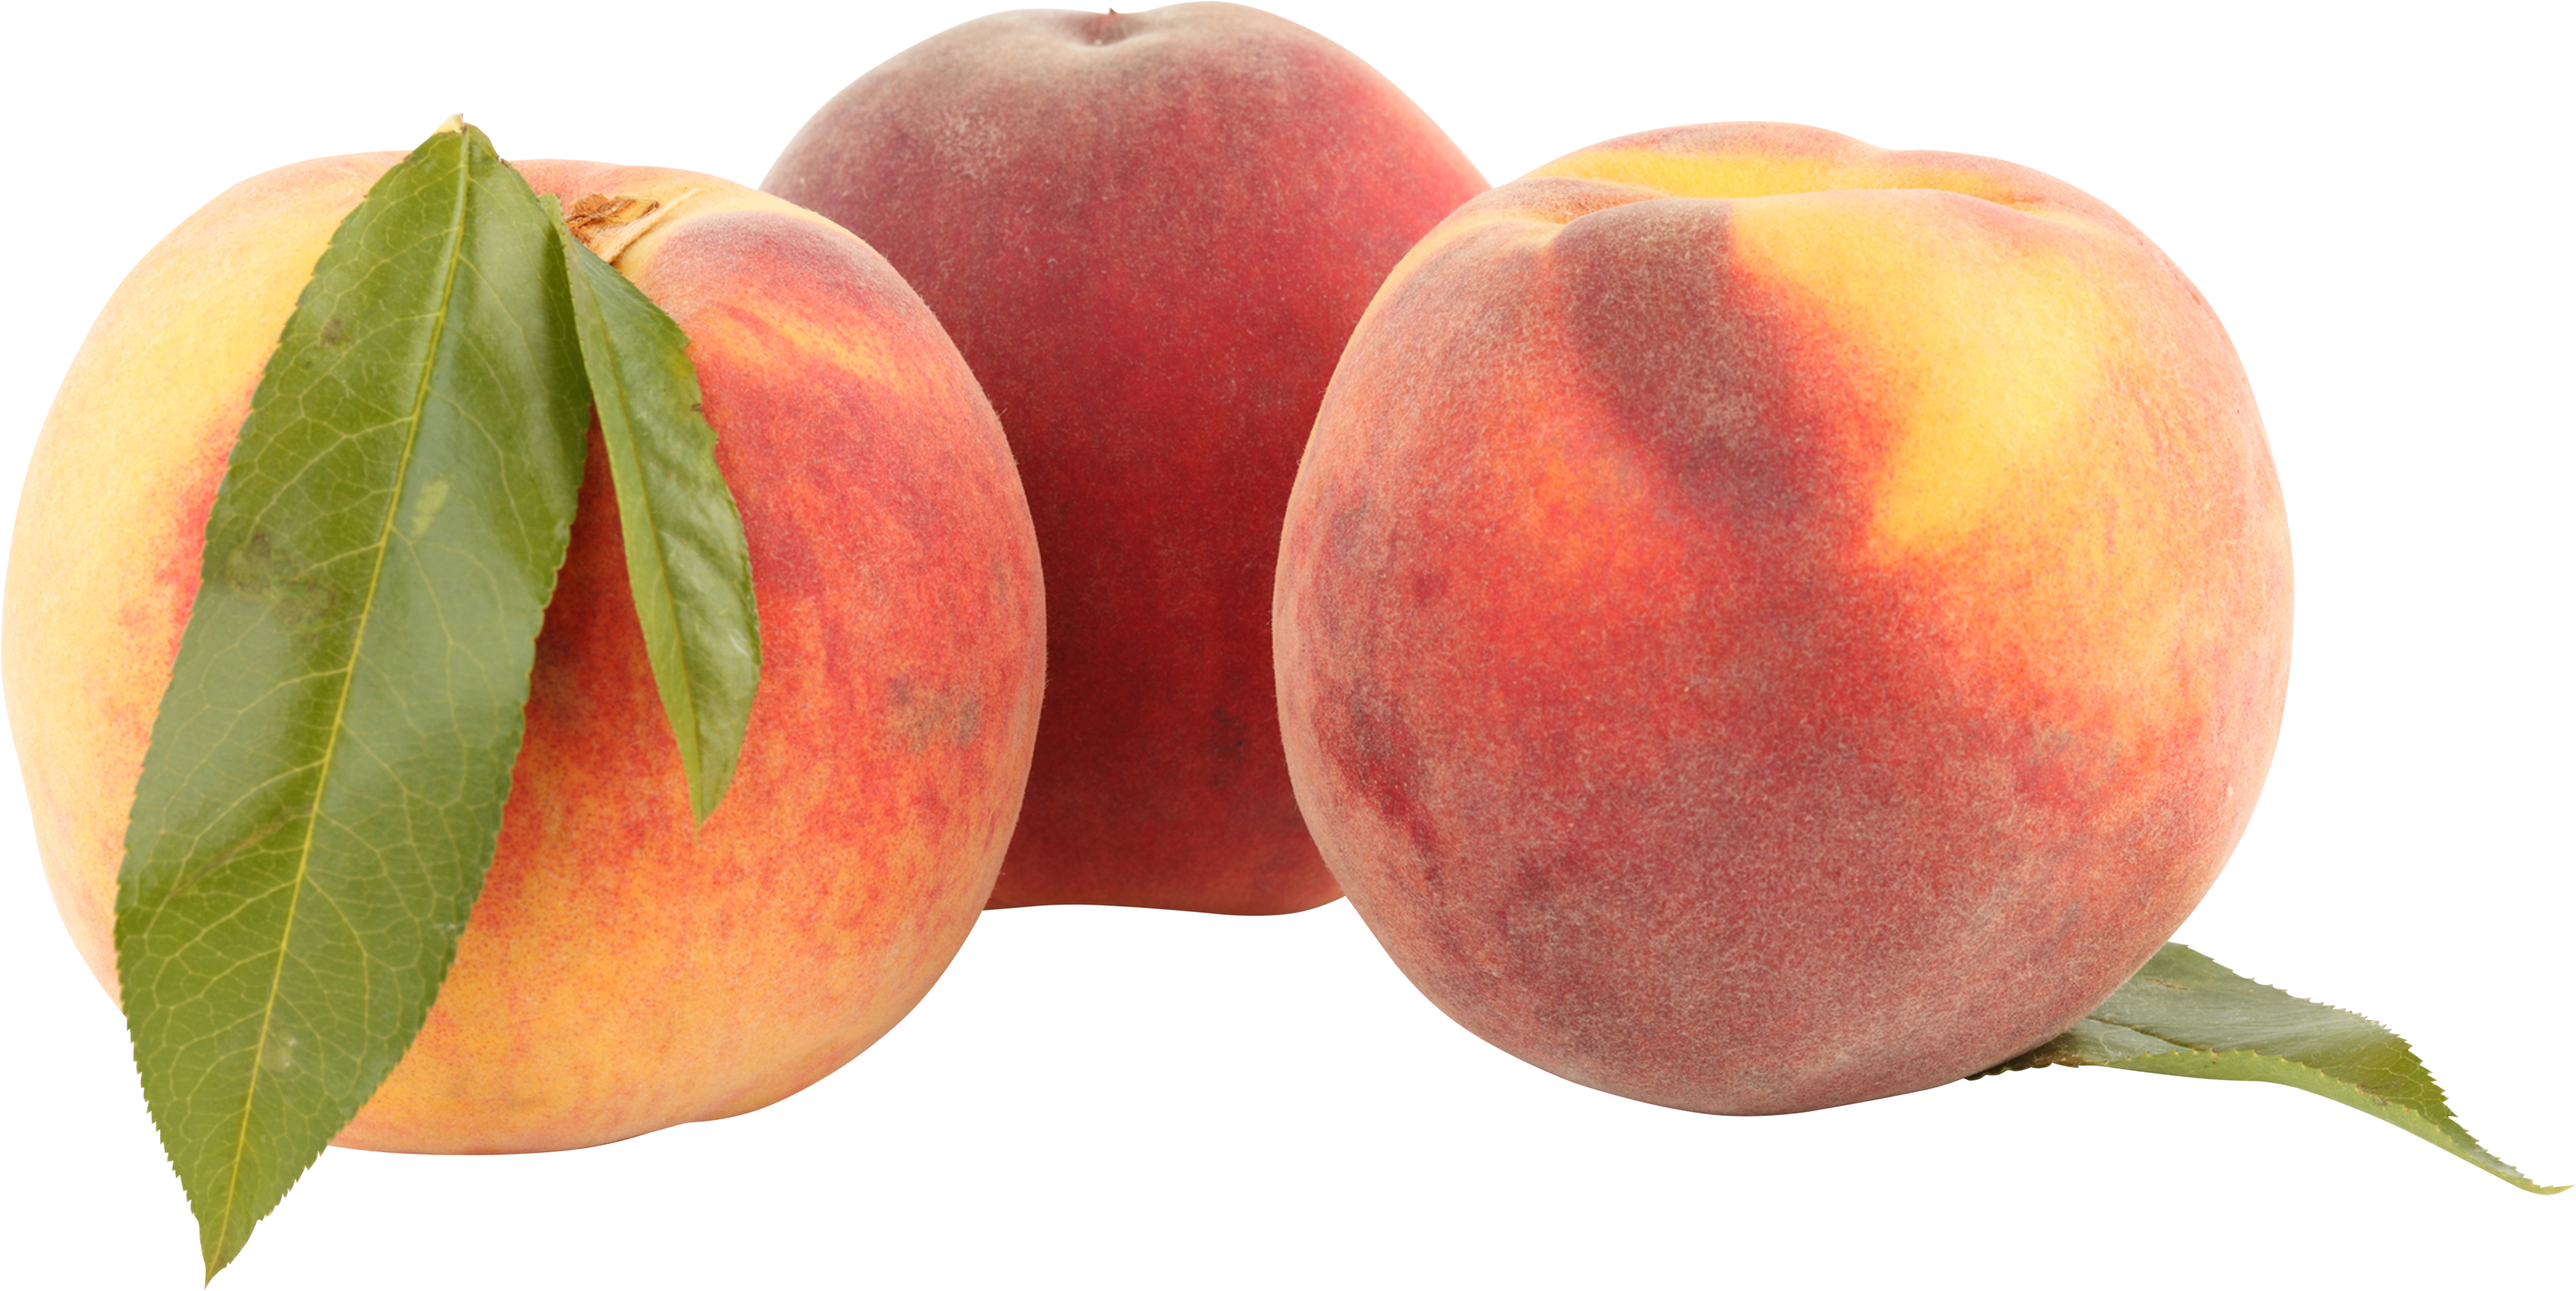 peach png image for download crazypngm crazy #34567